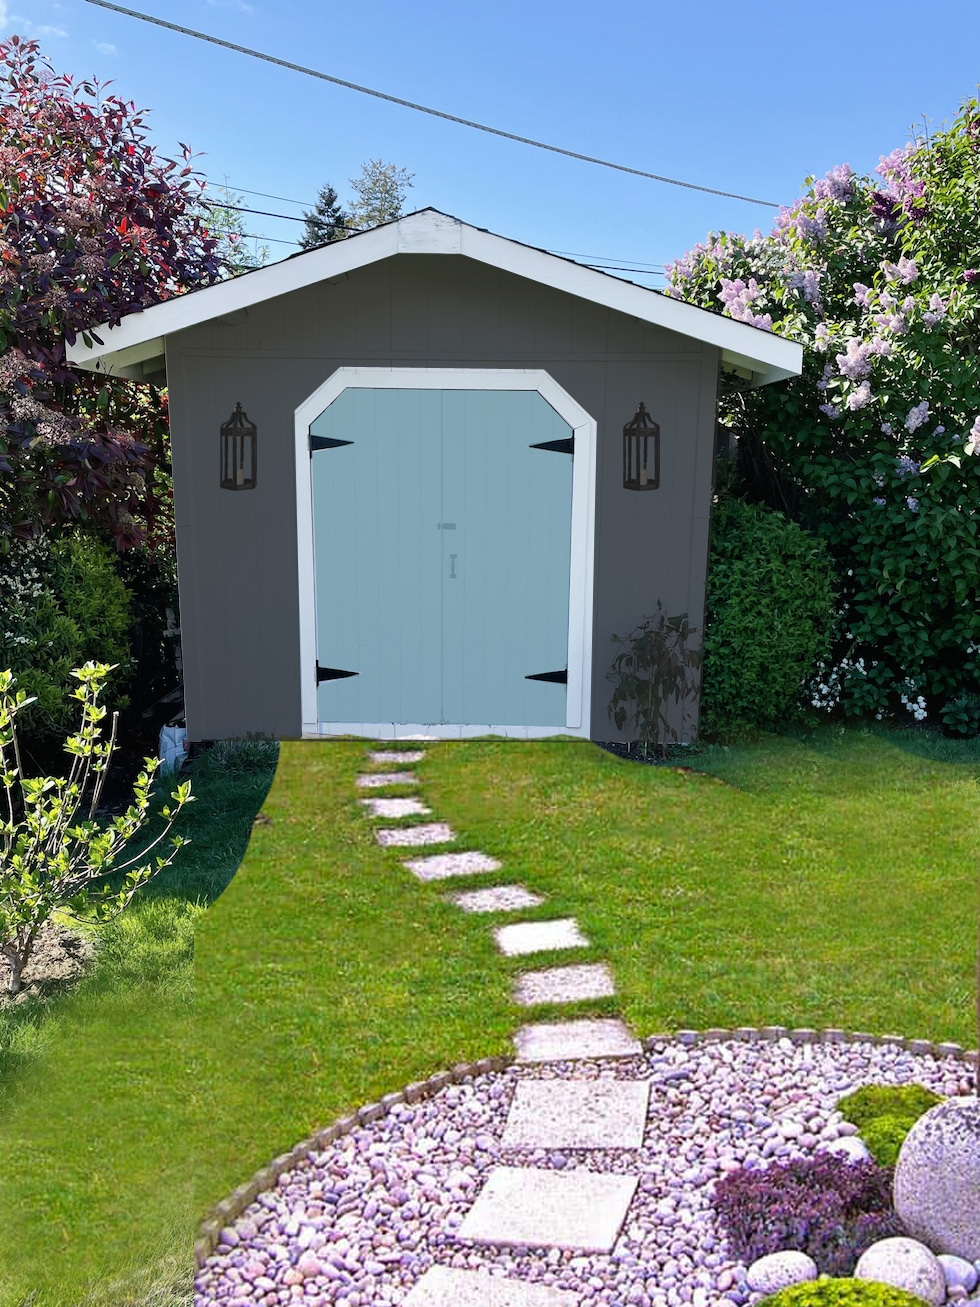 Help Me Redesign Our Garden Shed (+ Our Trick for Visualizing Design Changes)